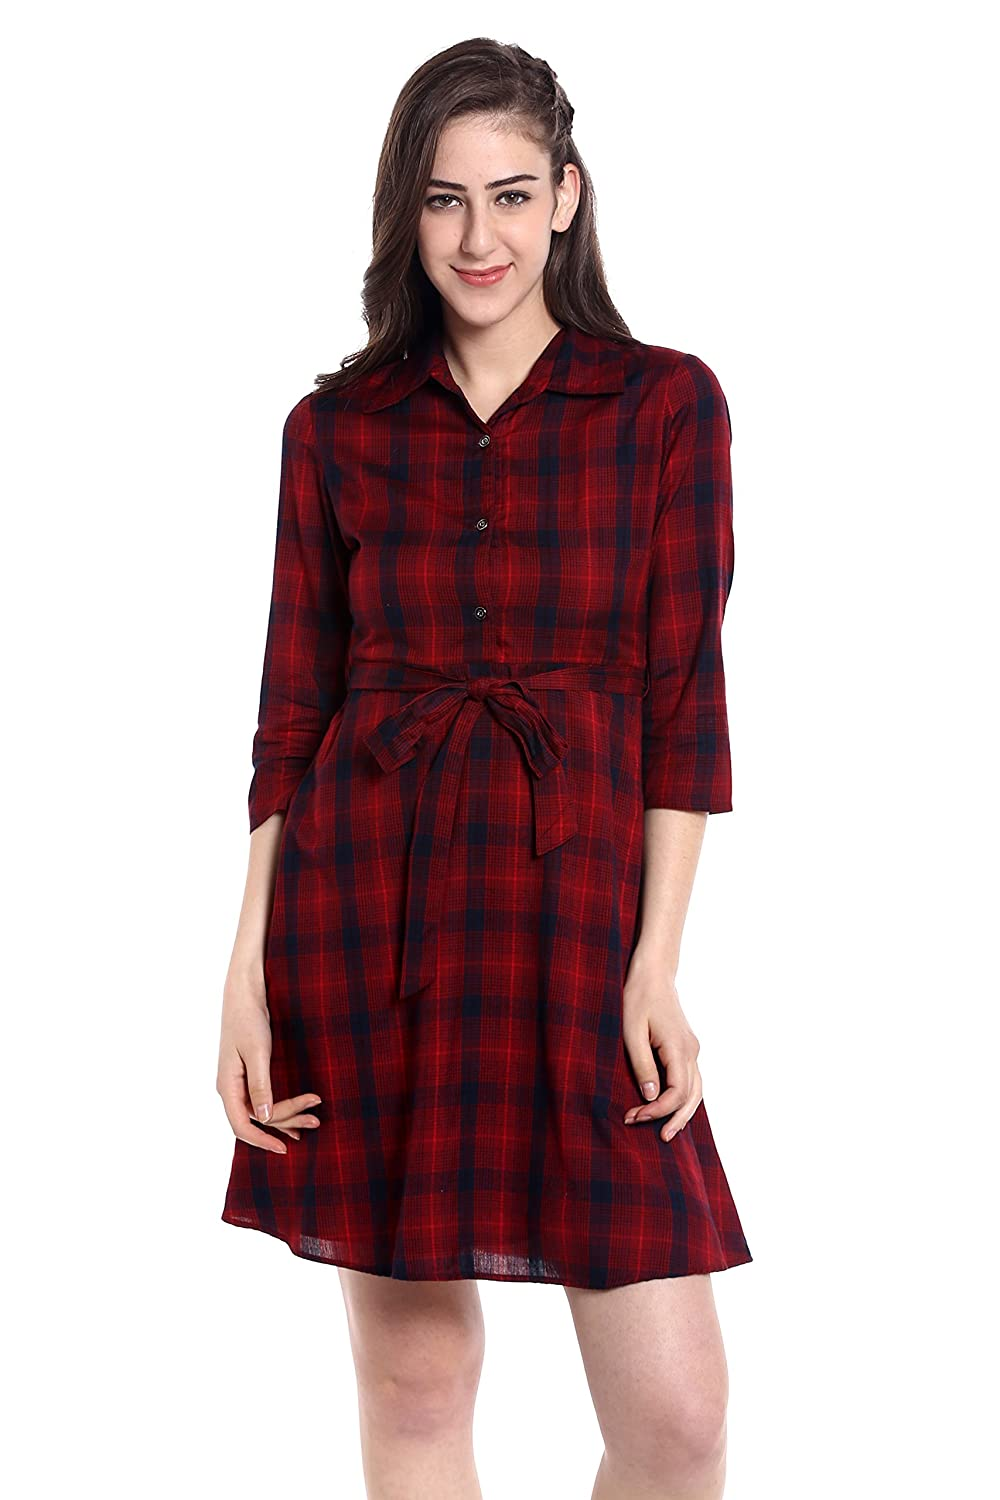 fb25e5c760d Design   Black and Red Plaid Rayon Shirt Dress. Three-Fourth Sleeves with  Button placket in front. Shirt Collar Neckline and Belt at the waist.